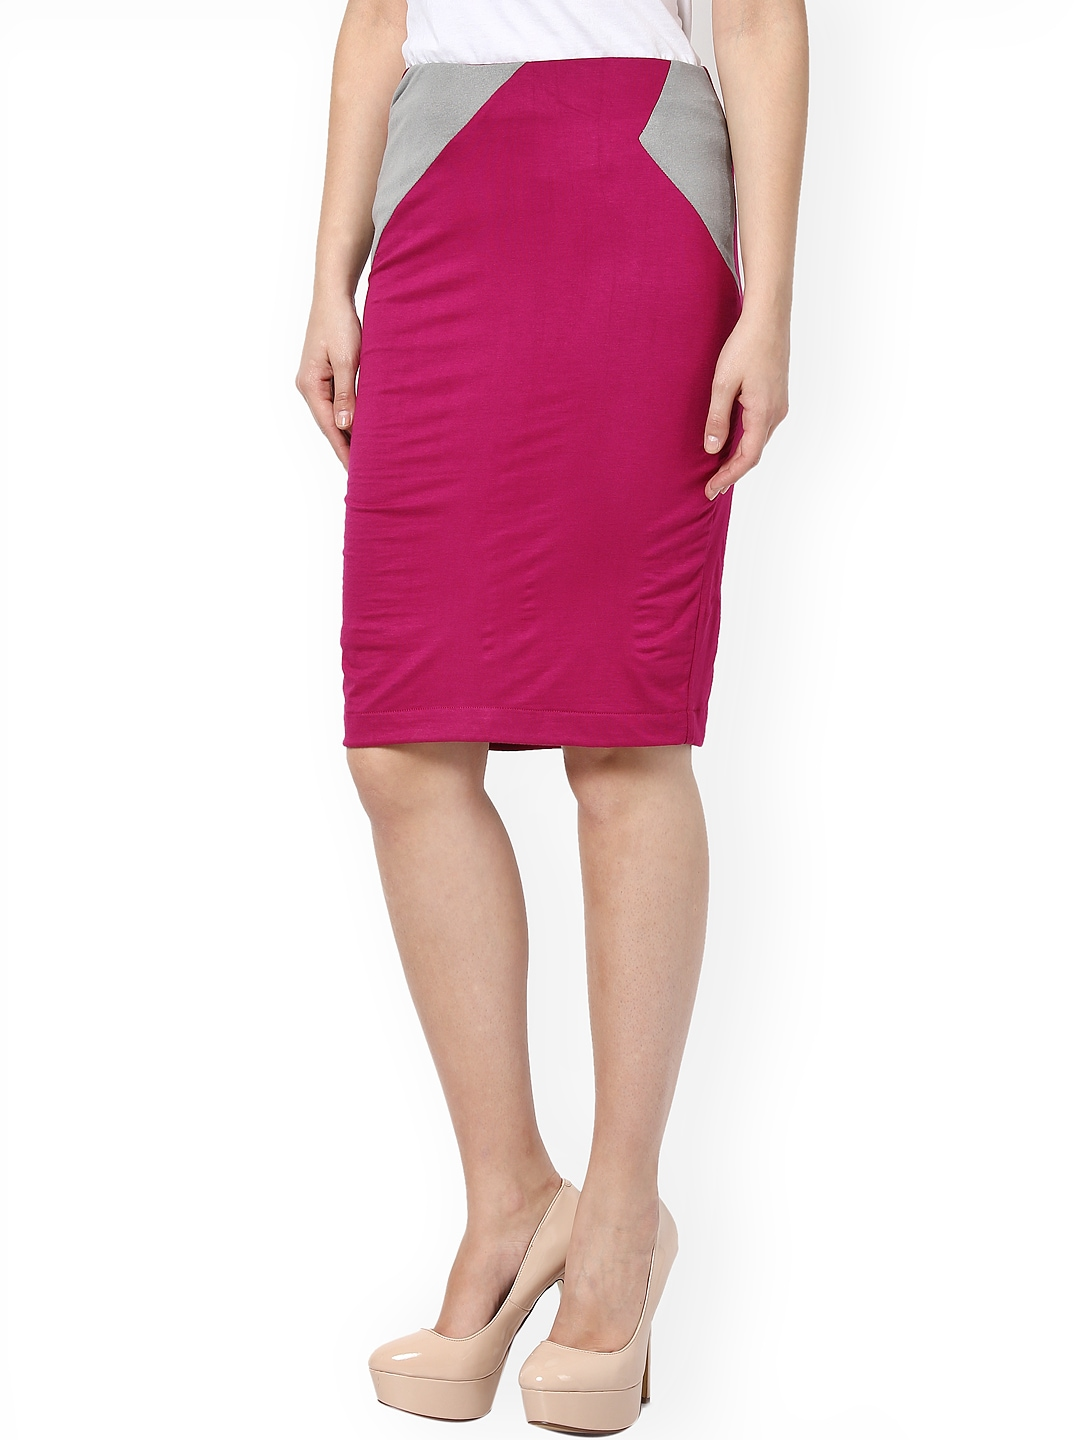 myntra kaaryah magenta pencil skirt 744155 buy myntra